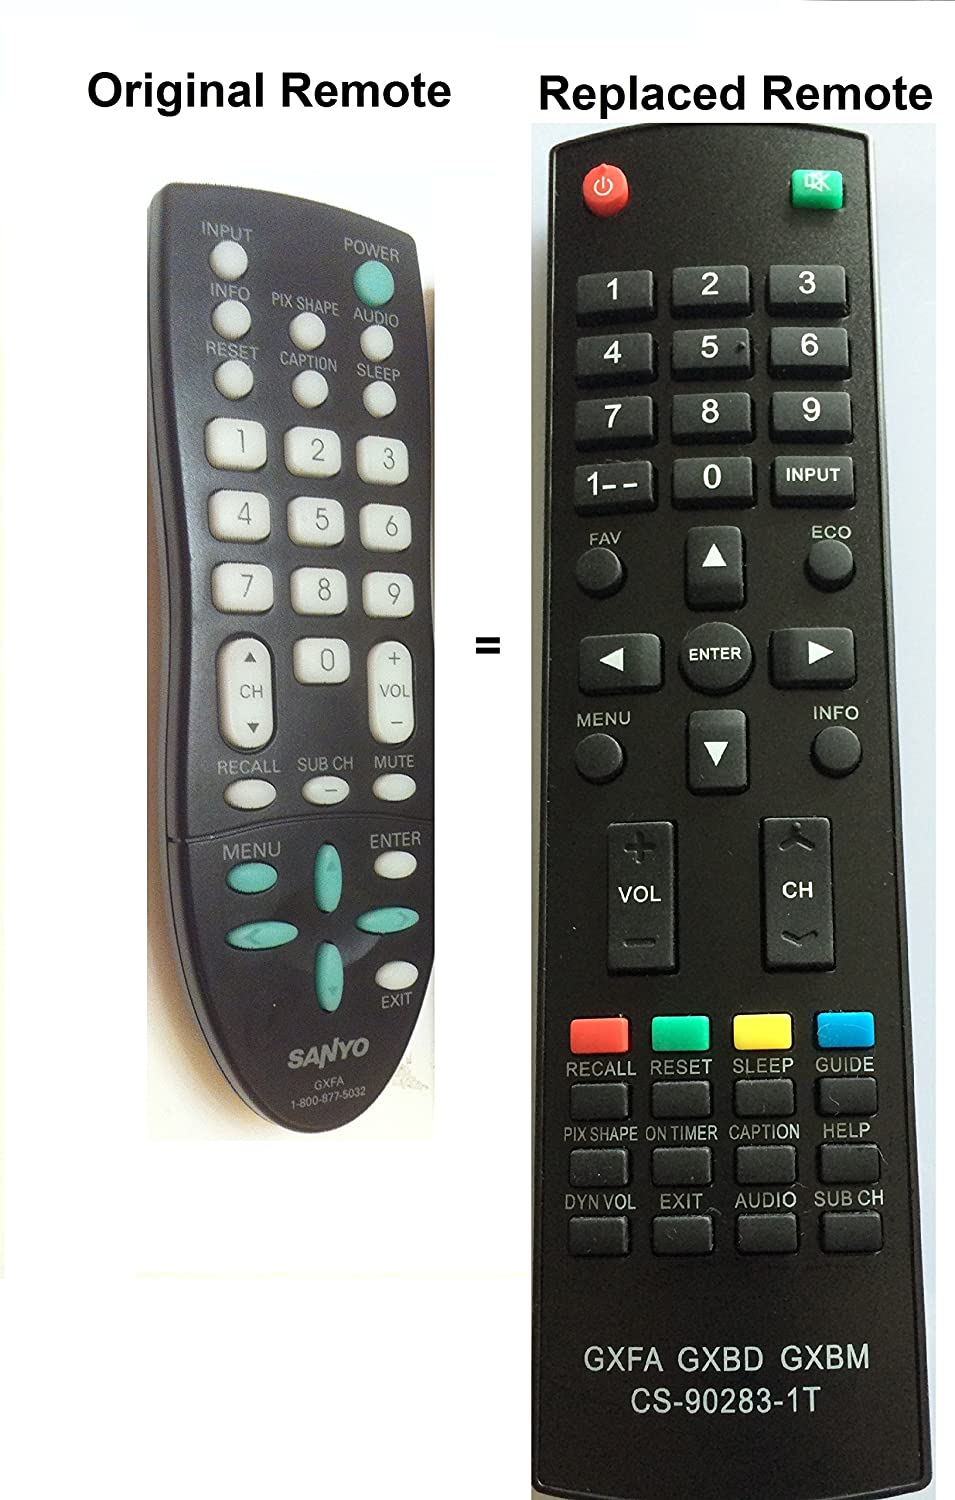 New Replaced Sanyo GXFA Replaced Remote for GXCC DP19648, DP26649, DP19649, DP32642, DP46812